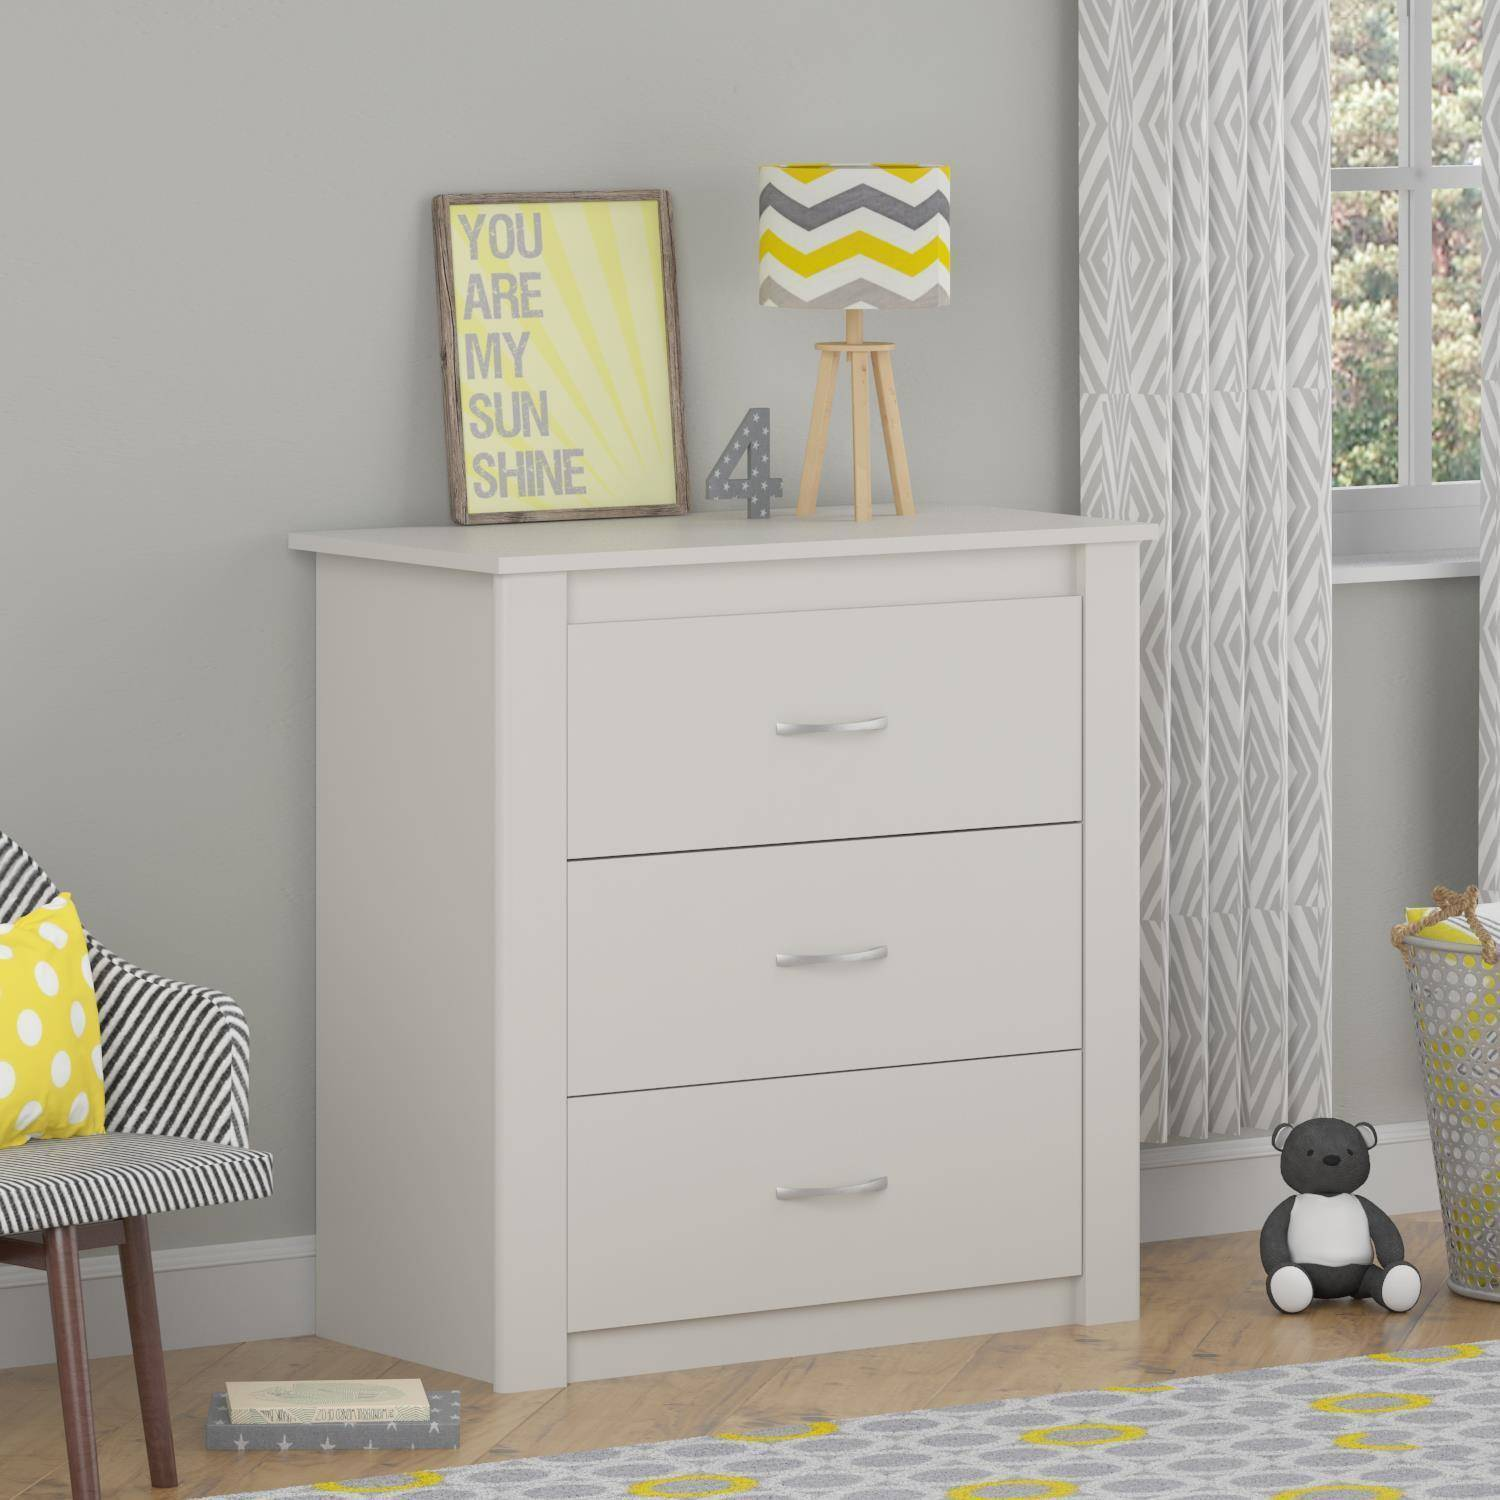 Cosco Riley 3-Drawer Dresser, White